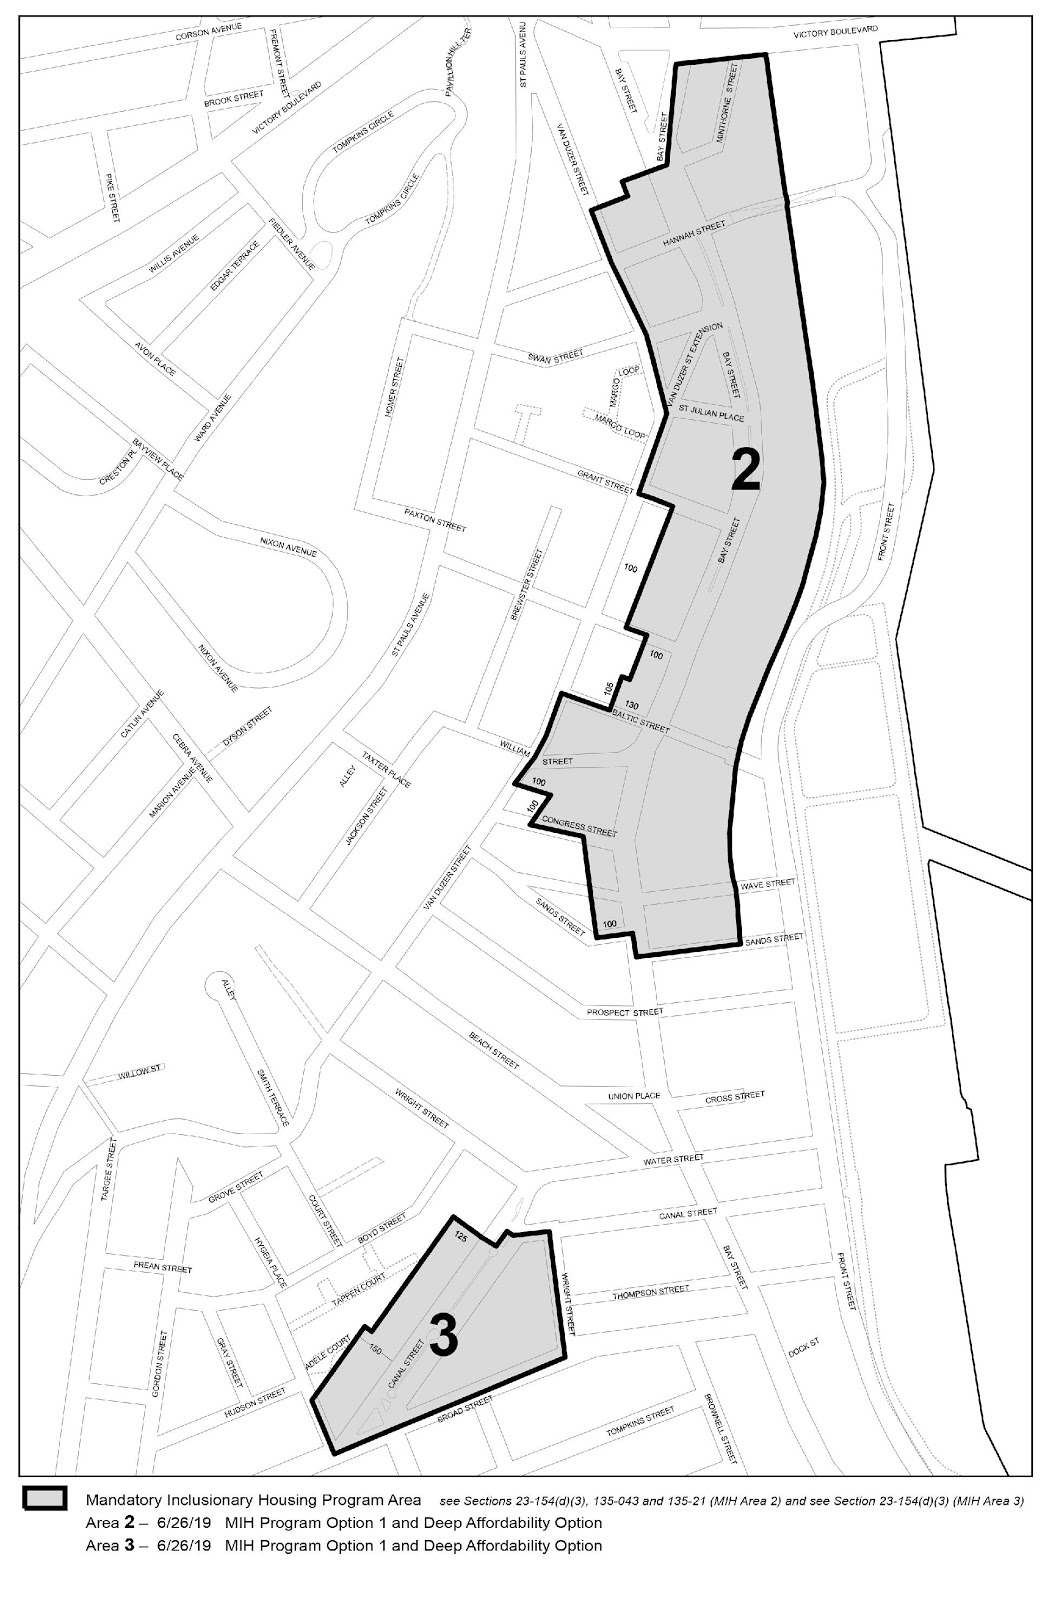 Zoning Resolutions F-Inclusionary Housing Designated Areas and Mandatory Inclusionary Housing Areas_2.129